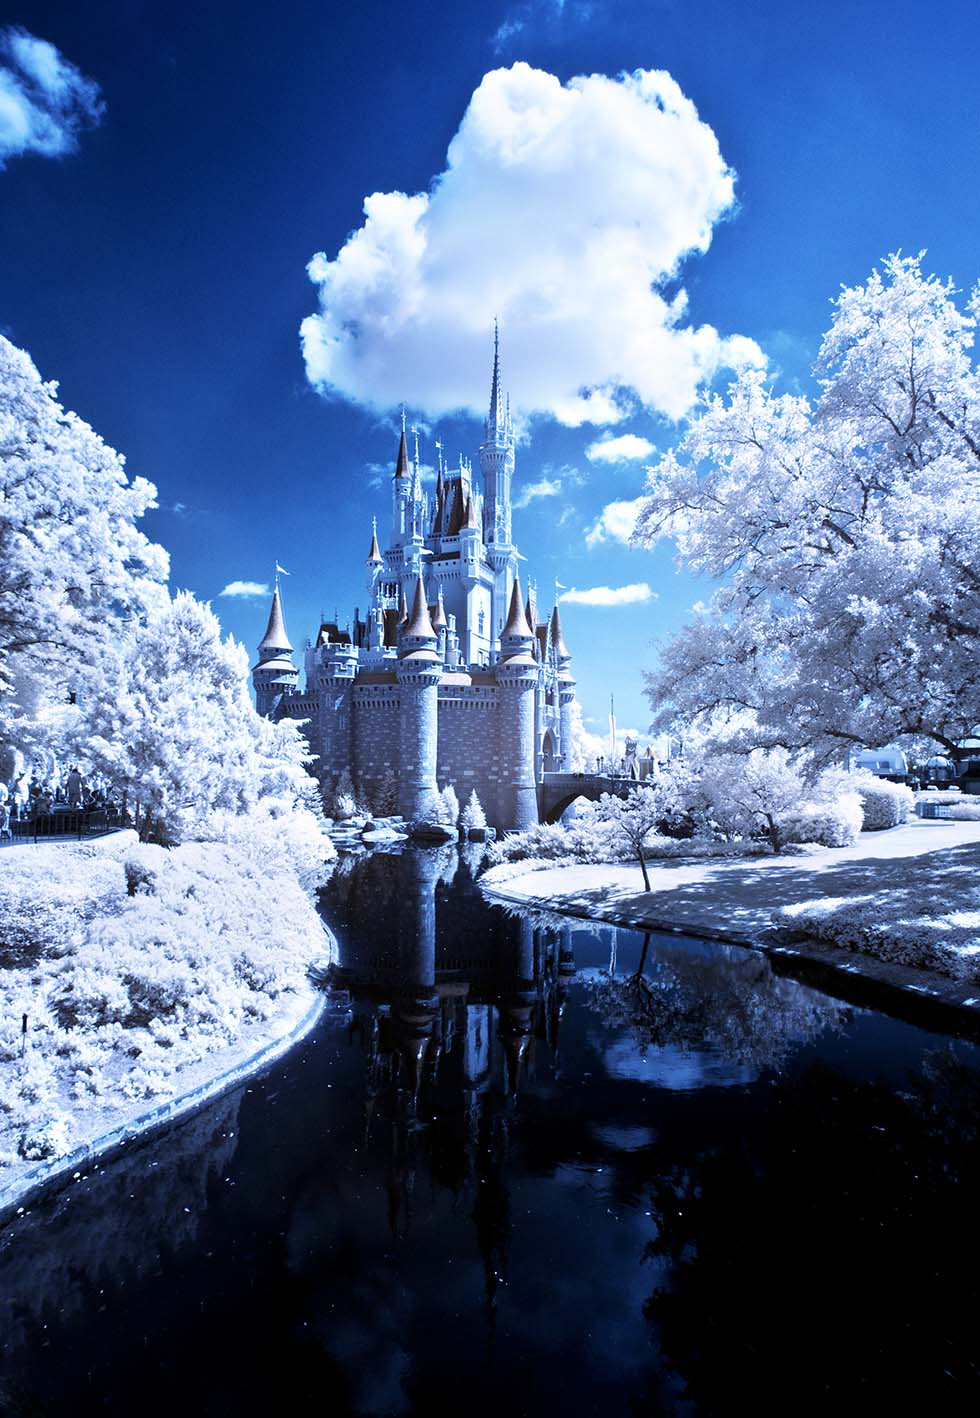 infrared photography -  7